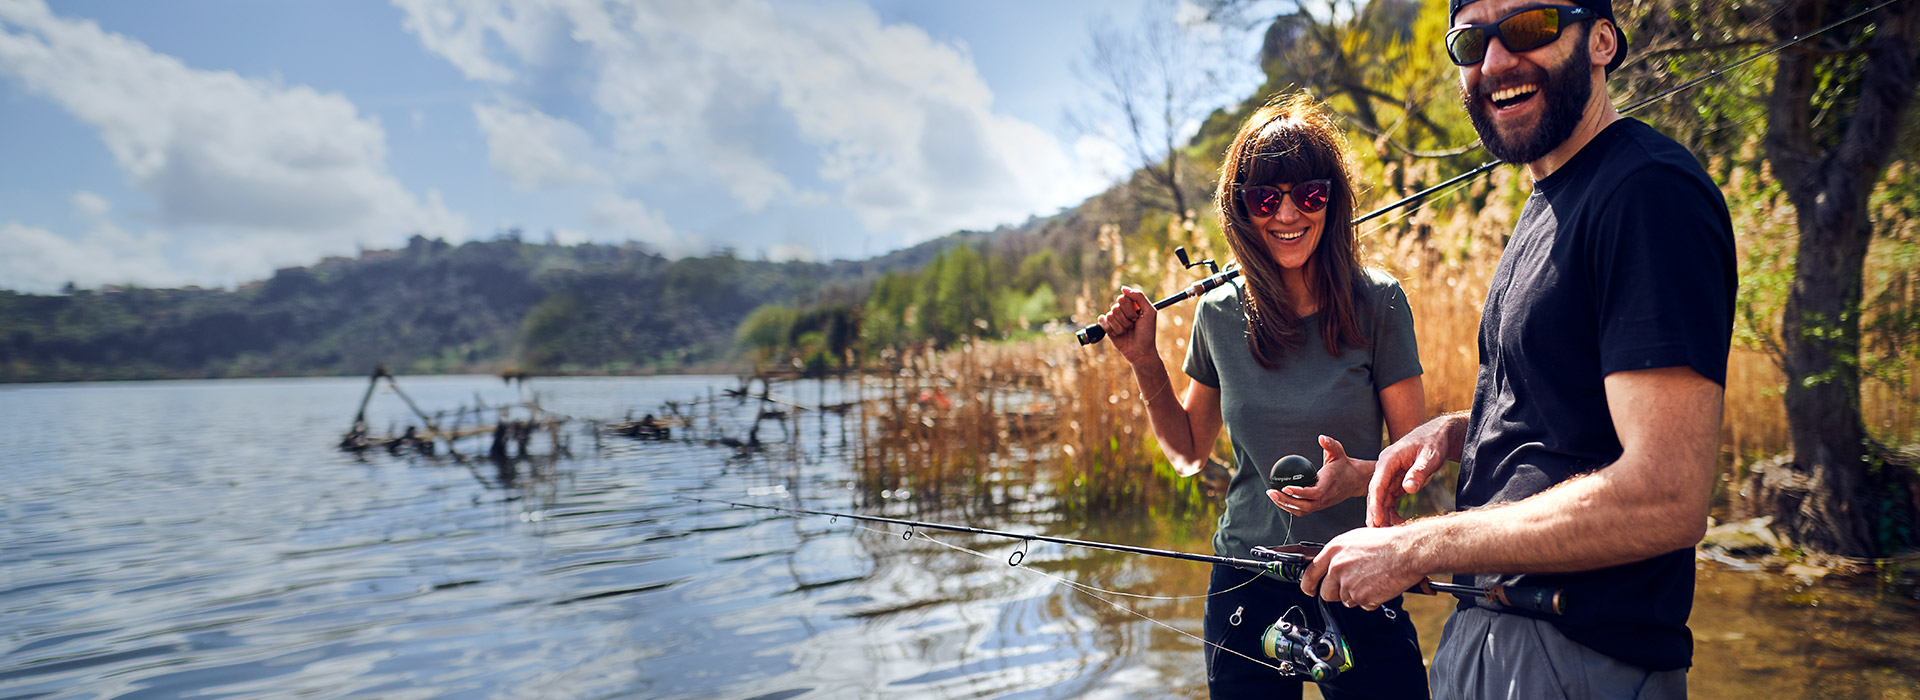 Grab your rods and enjoy local nature!Deeper sonar from €189.99